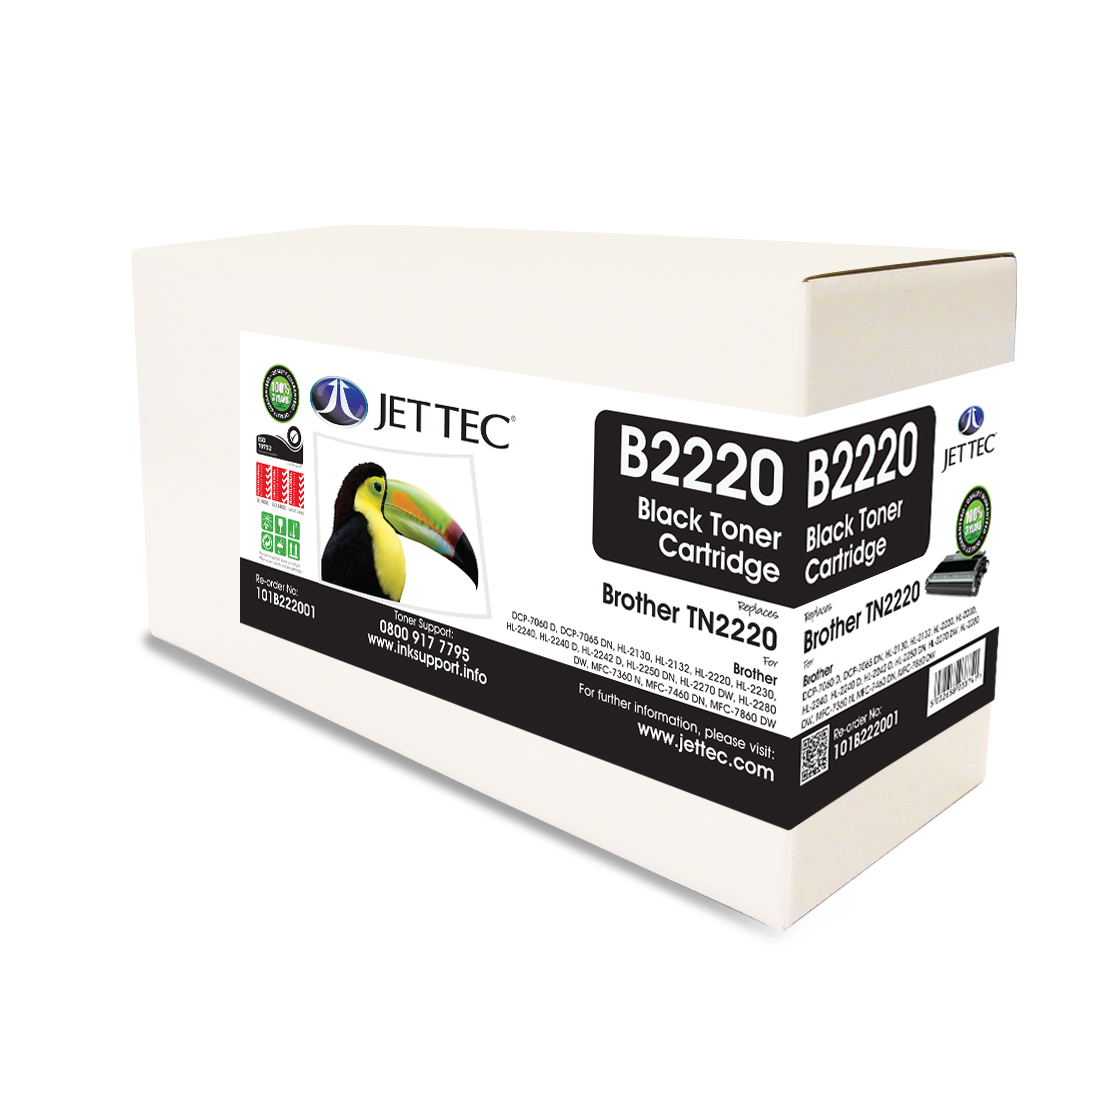 Jet Tec B2220 Brother TN2220 laser toner printer cartridges